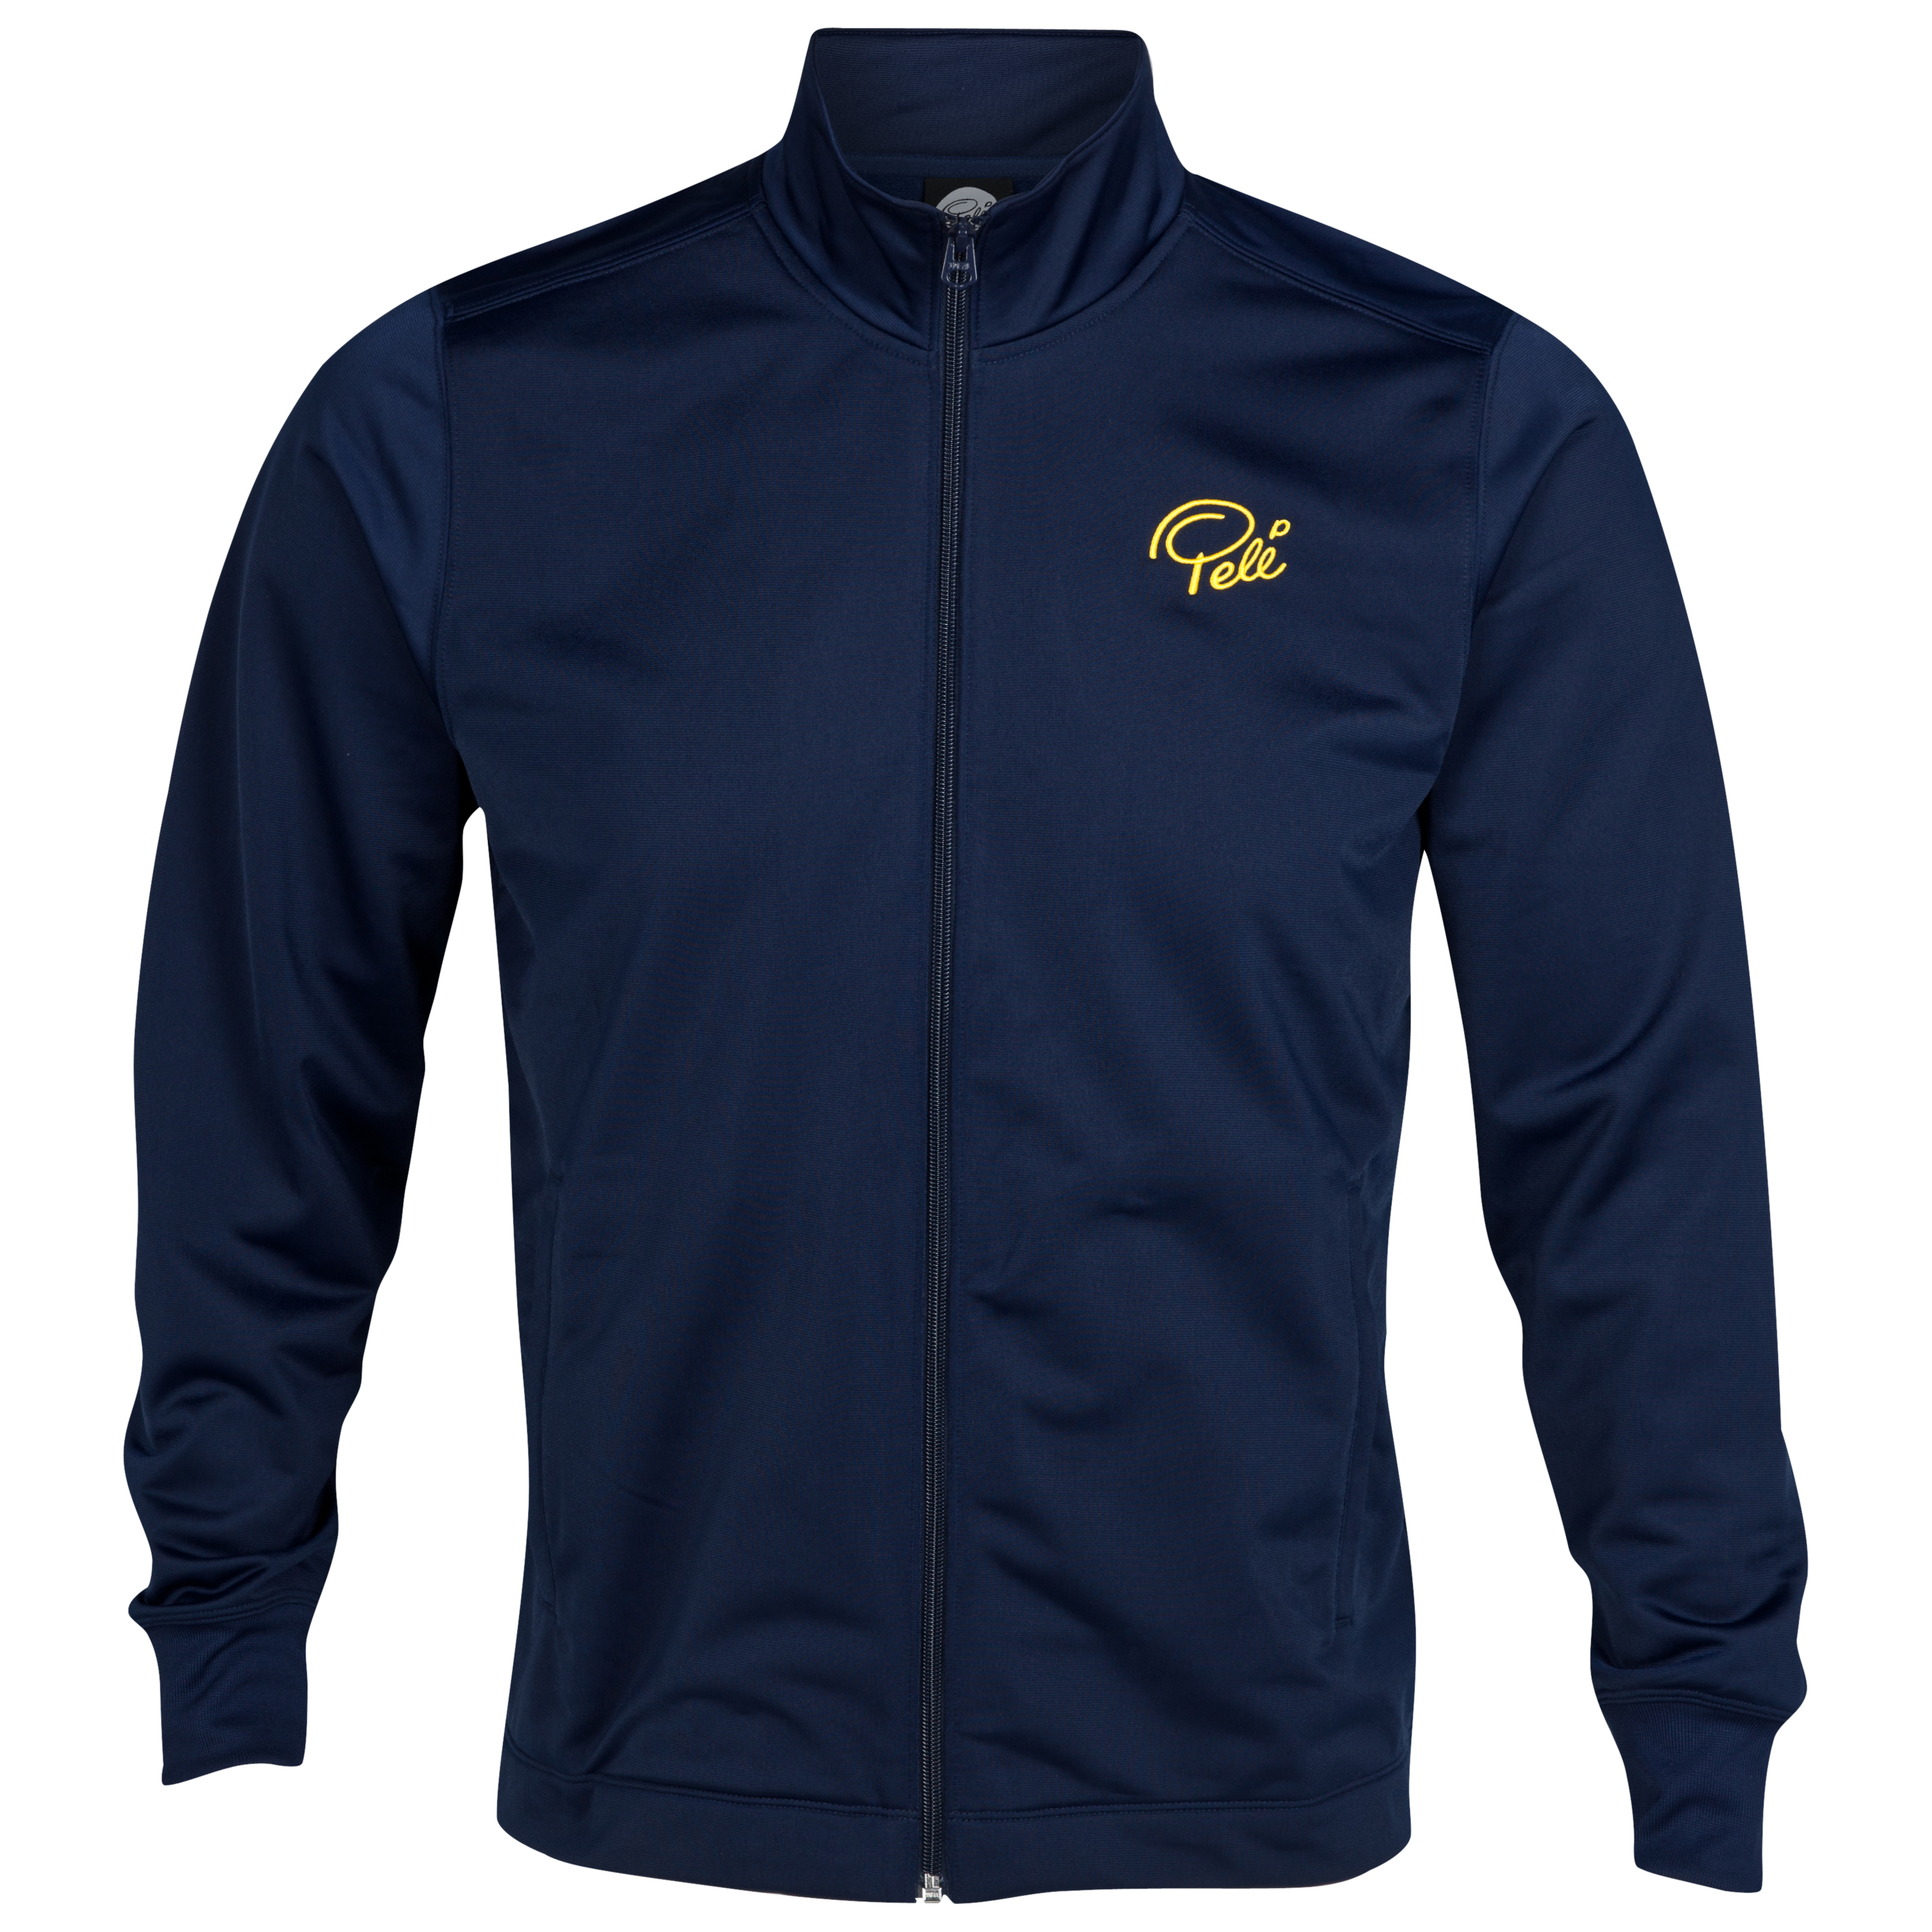 Pele Sports Core Track Jacket - Peacoat Navy